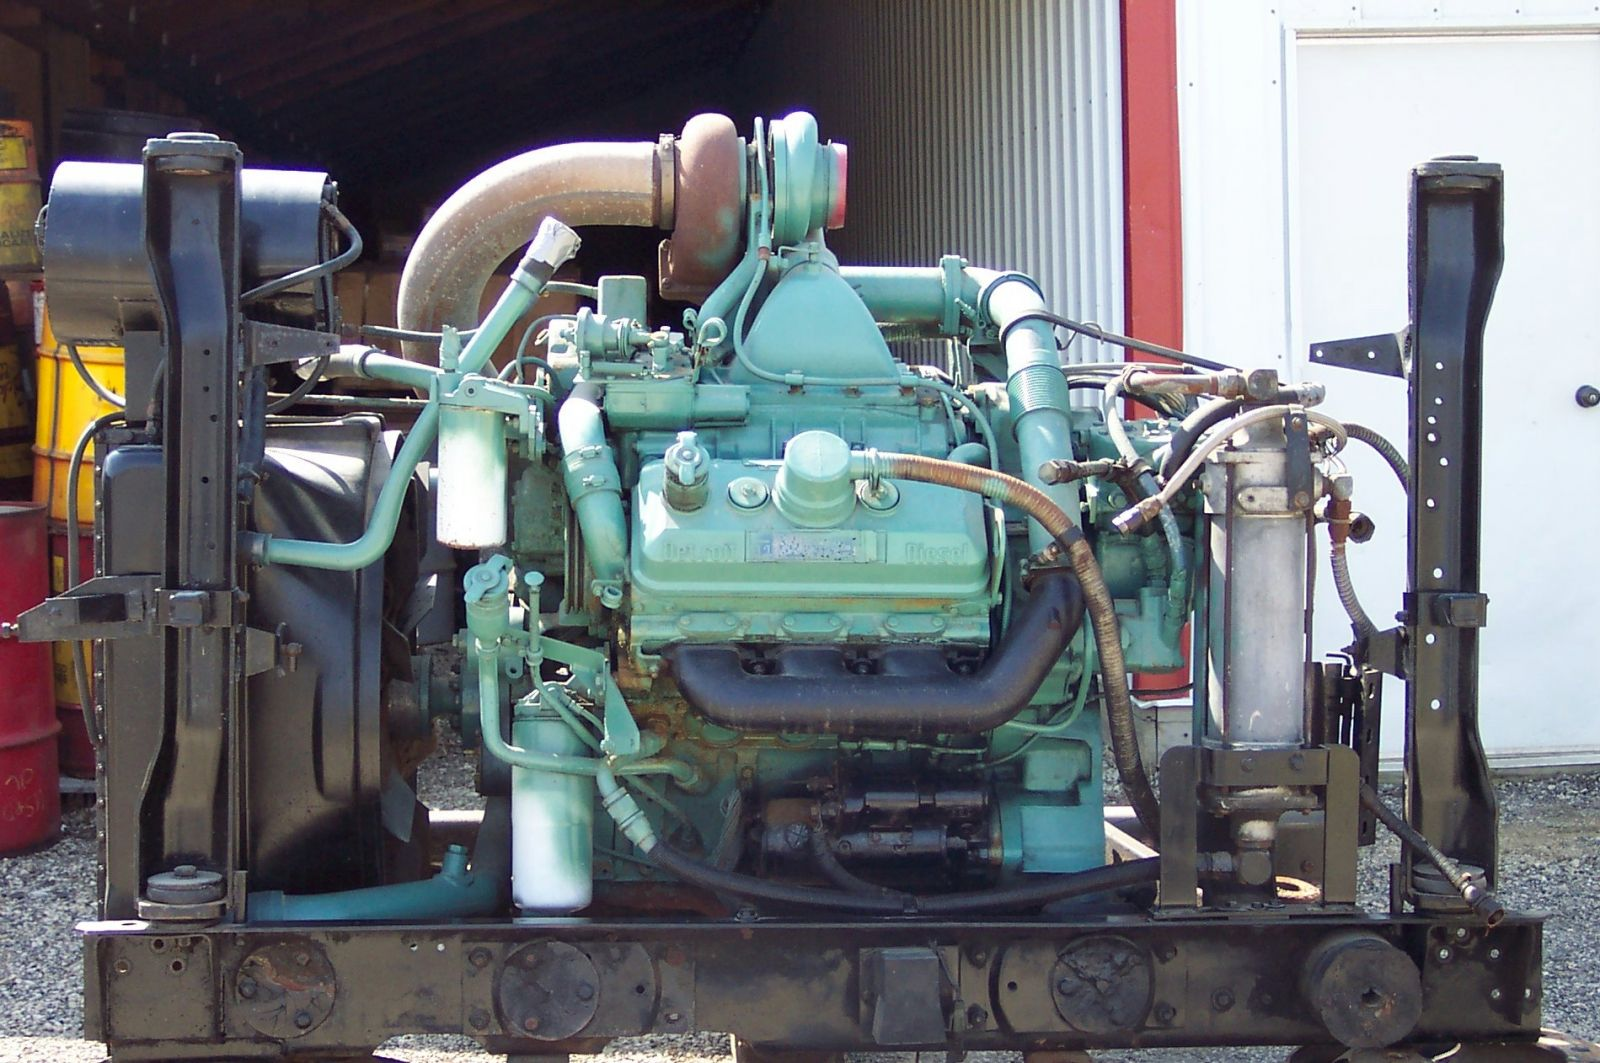 Bus Engines for sale, Rochester MN